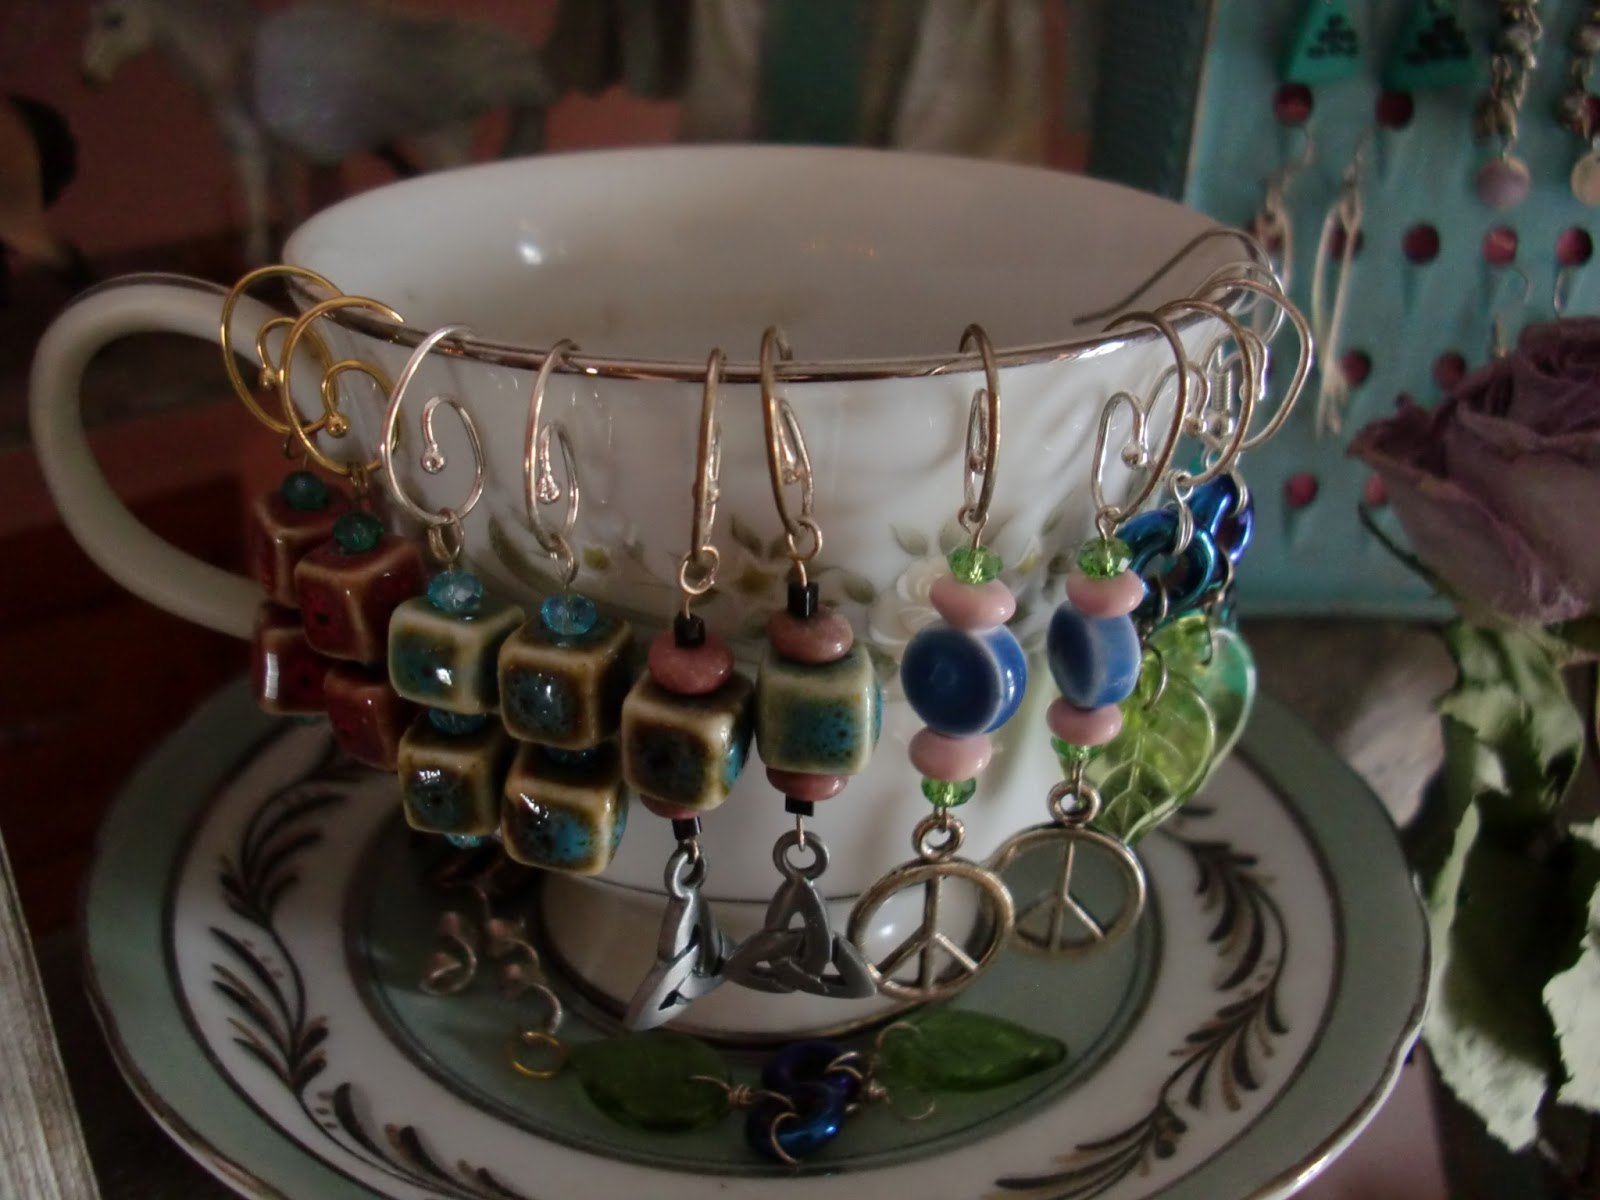 Original, yet simple and cute jewelry display ideas from a teacup used as an earrings hanger.